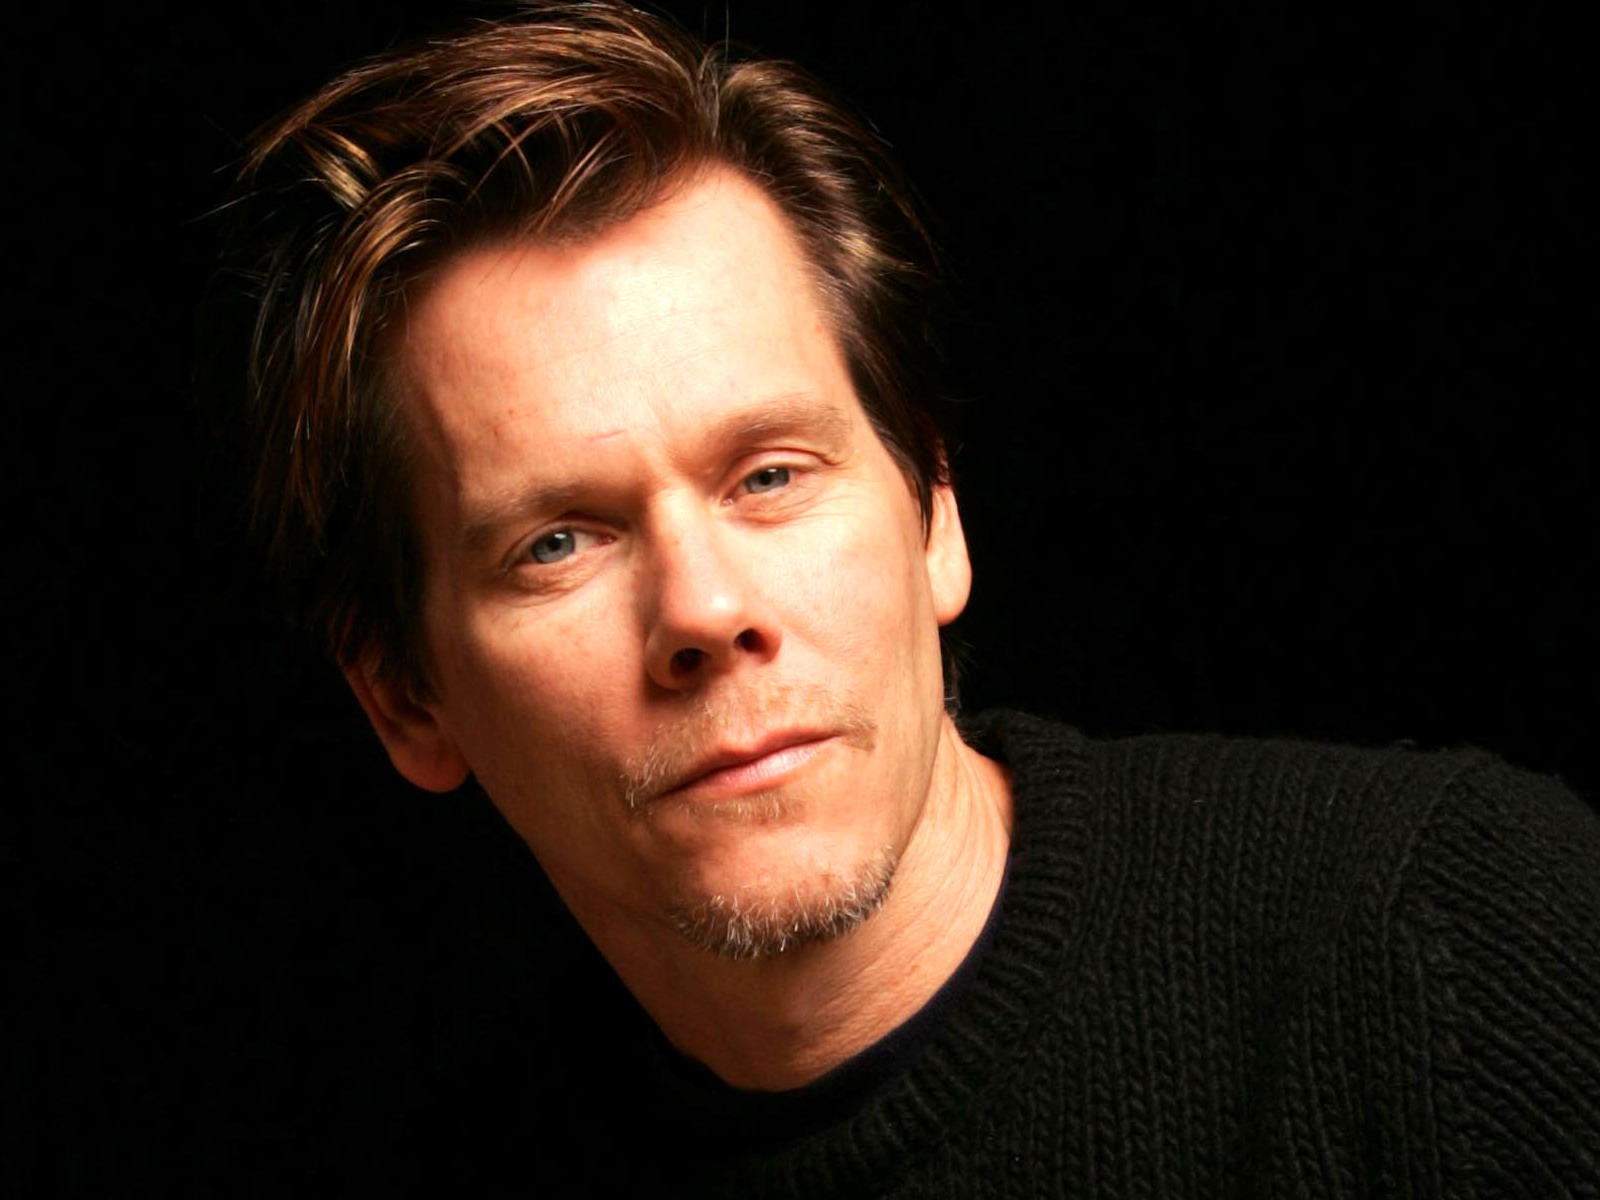 1600x1200 - Kevin Bacon Wallpapers 7